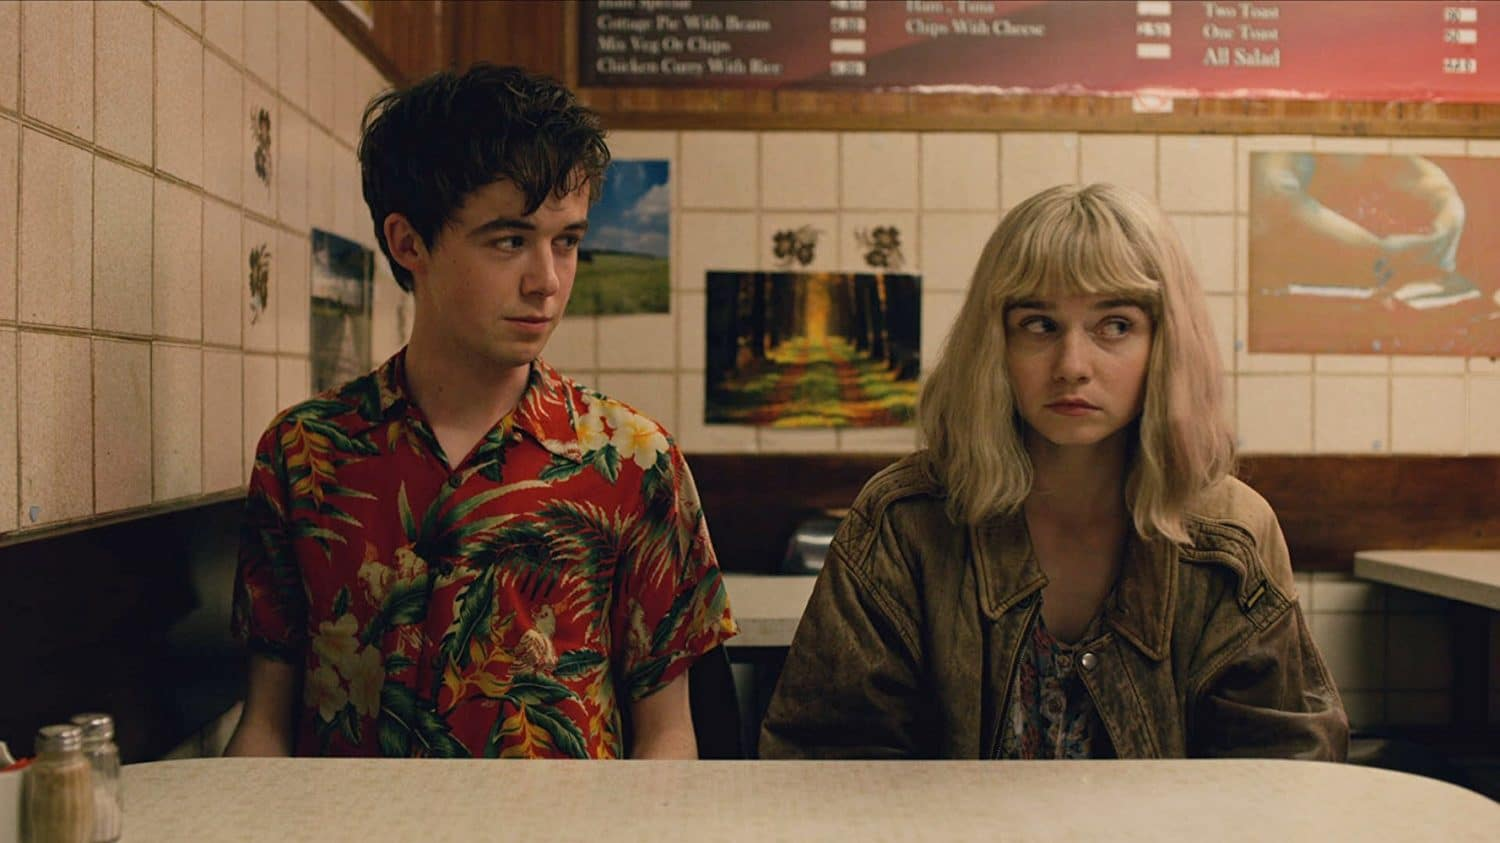 netflix hunting-The End of the F***ing World-tv-television-binge-lifestyle-must see-recommended-style by nomads-style-stylebynomads-style by nomads blog